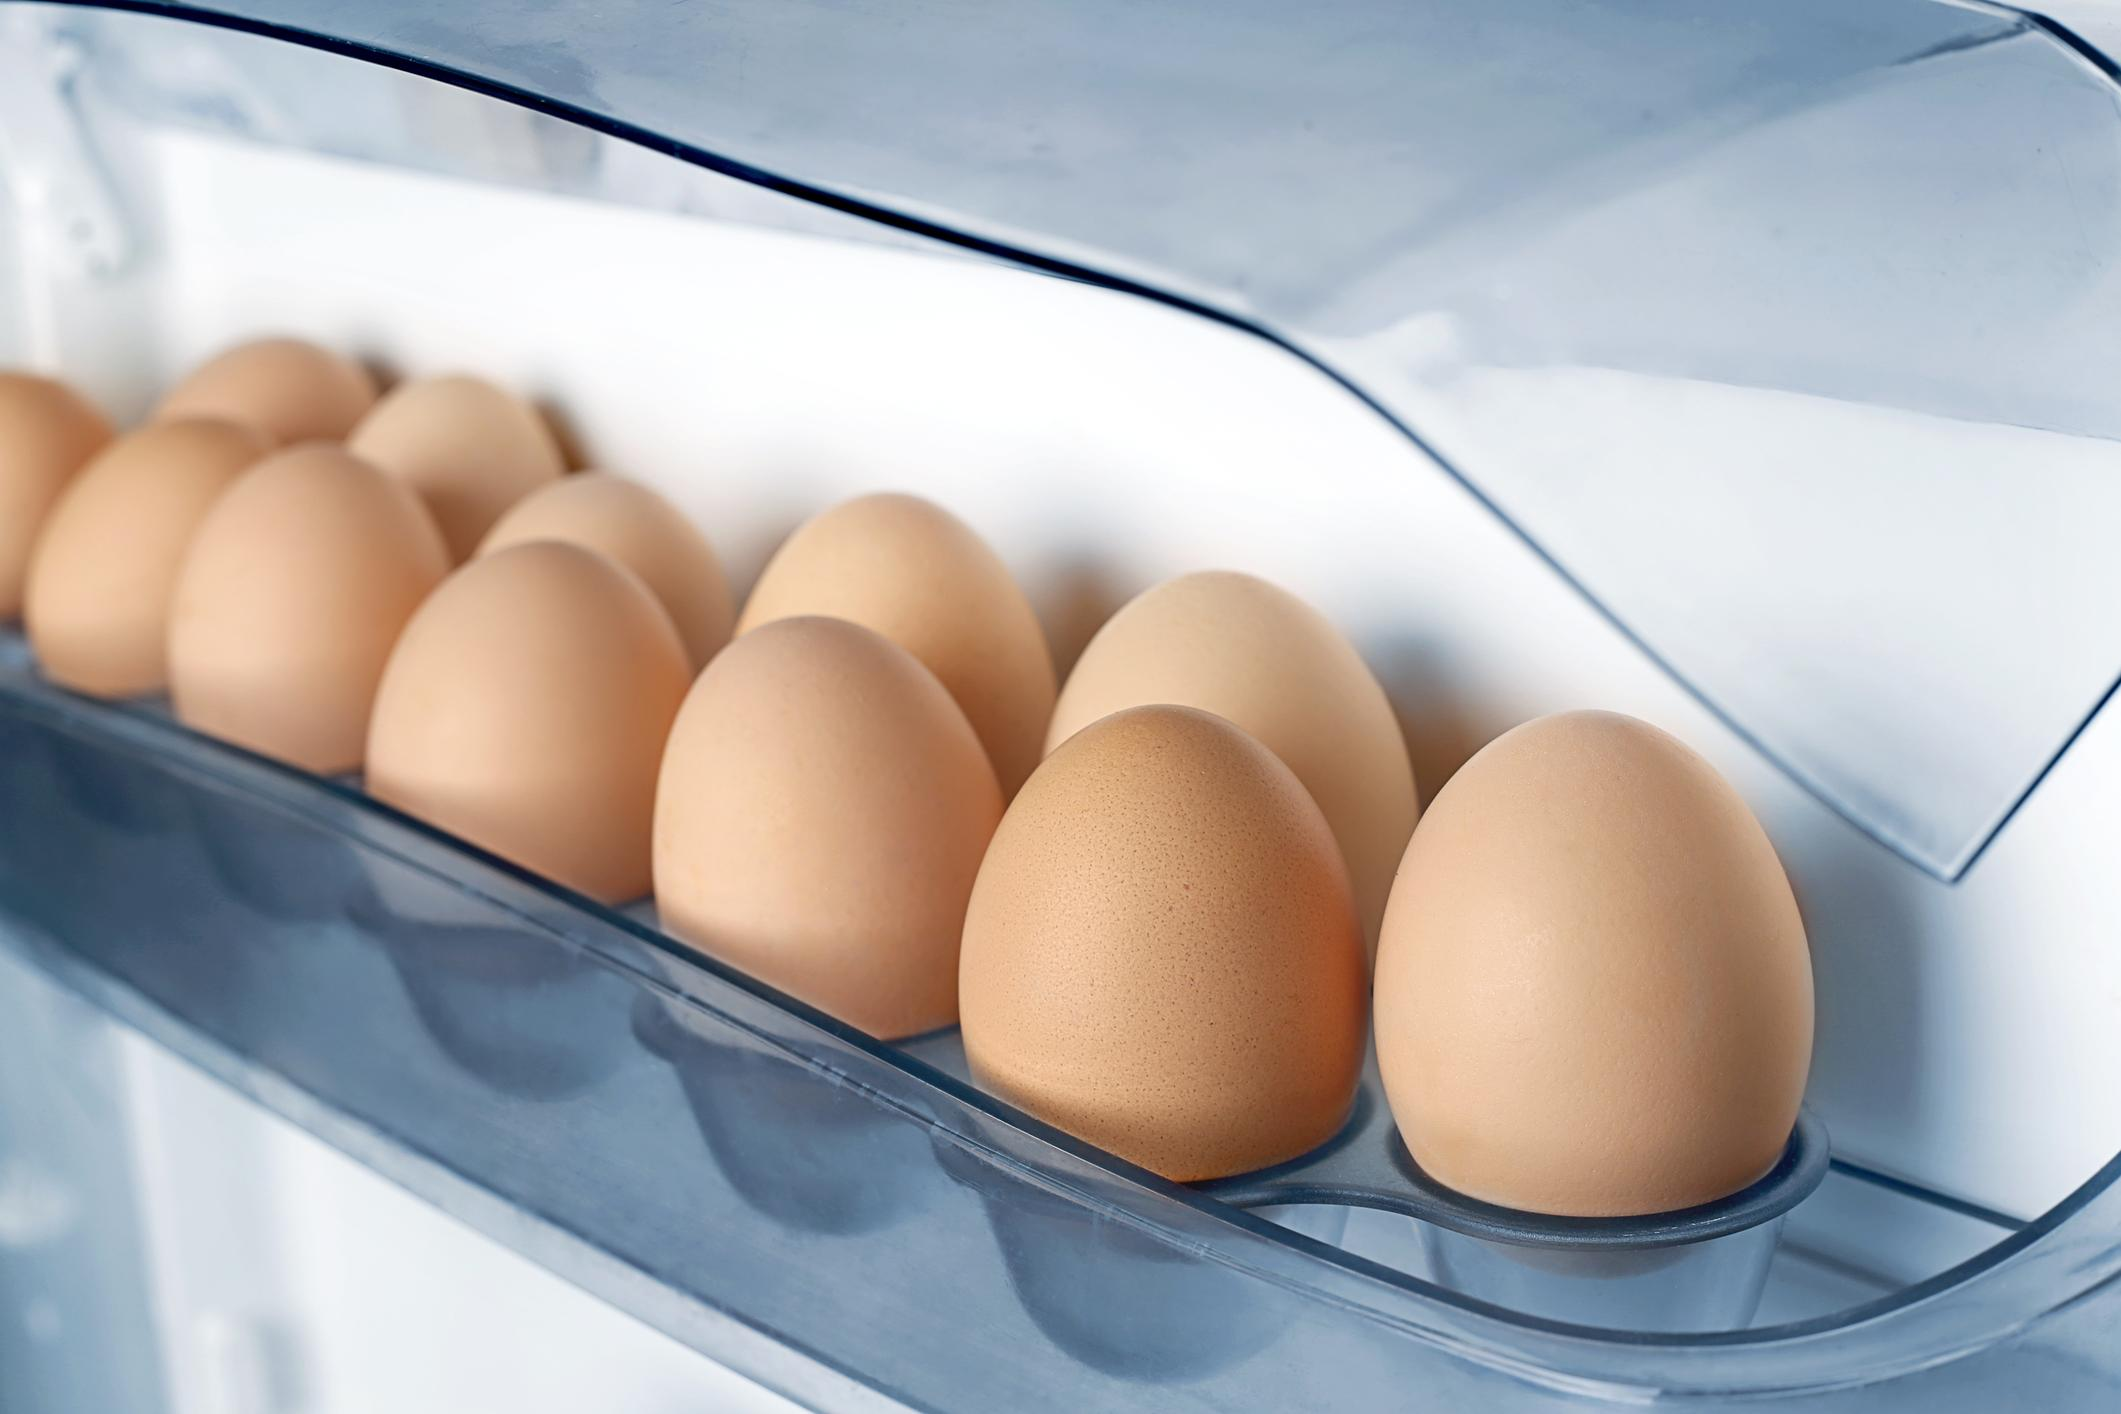 How long can you keep boiled eggs refrigerated